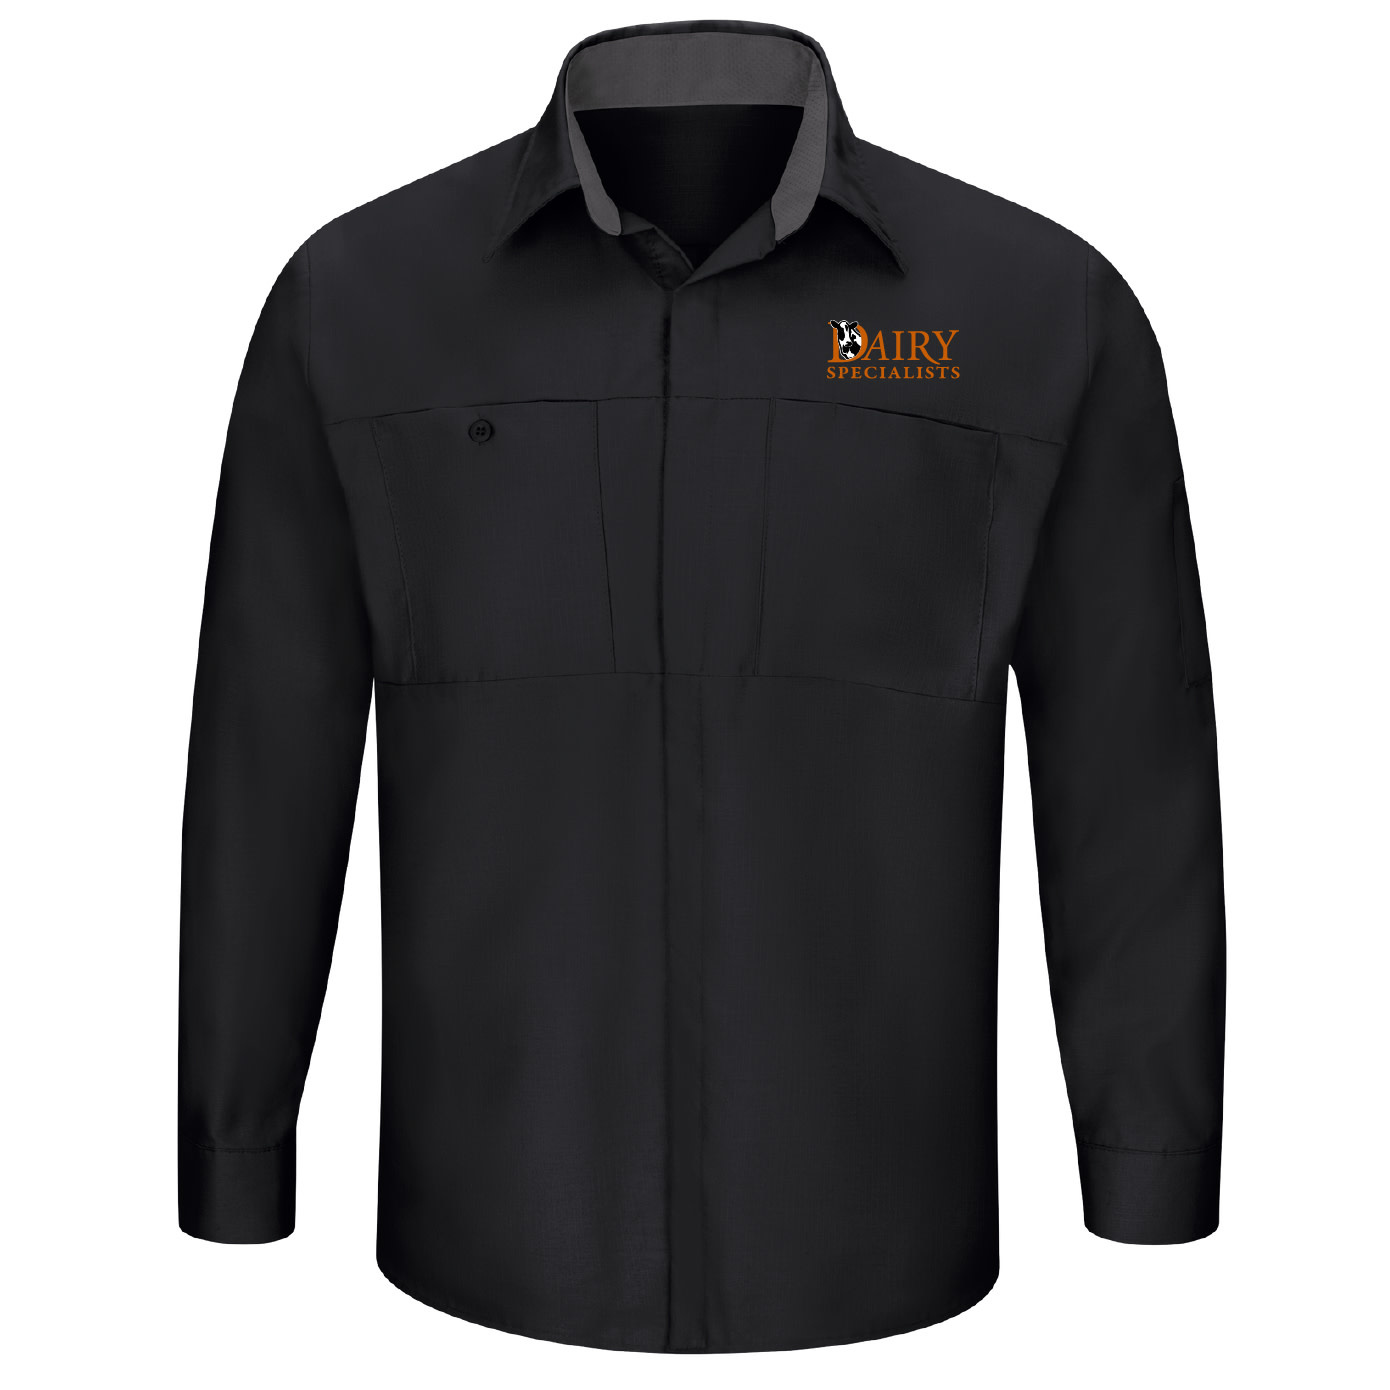 Red Cap Red Cap Men's Long Sleeve Performance Plus Shop Shirt With OilBlok Technology (Black/Charcoal)